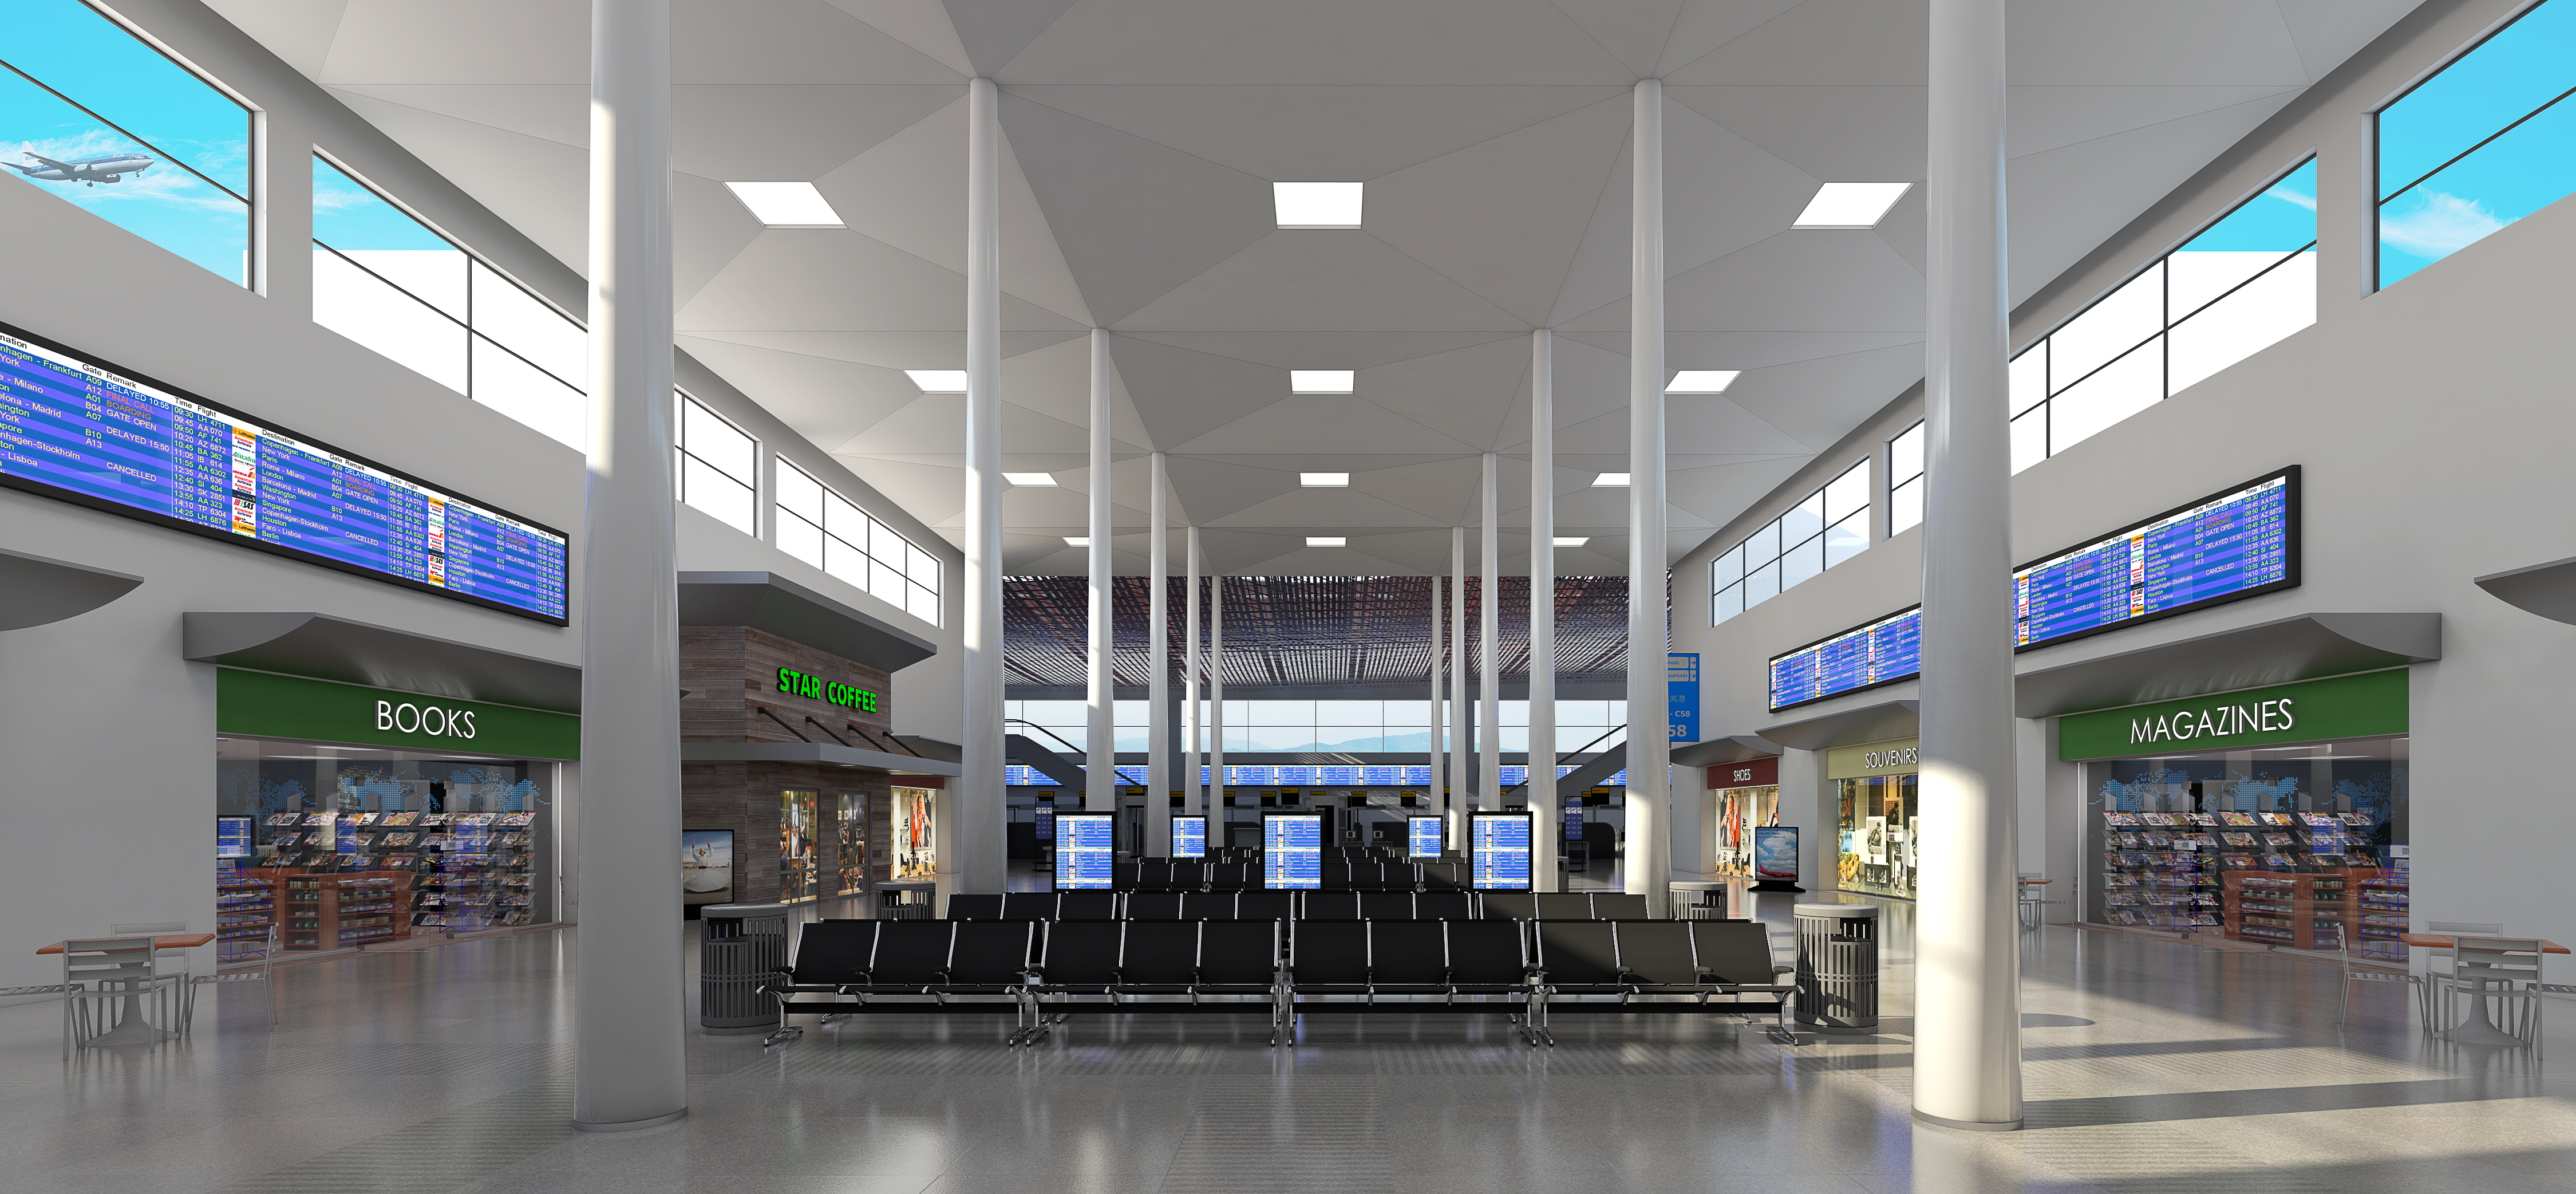 Airport Interior Rendering · Contemporary Reception Rendering ·  Architectural Office Lighting Render